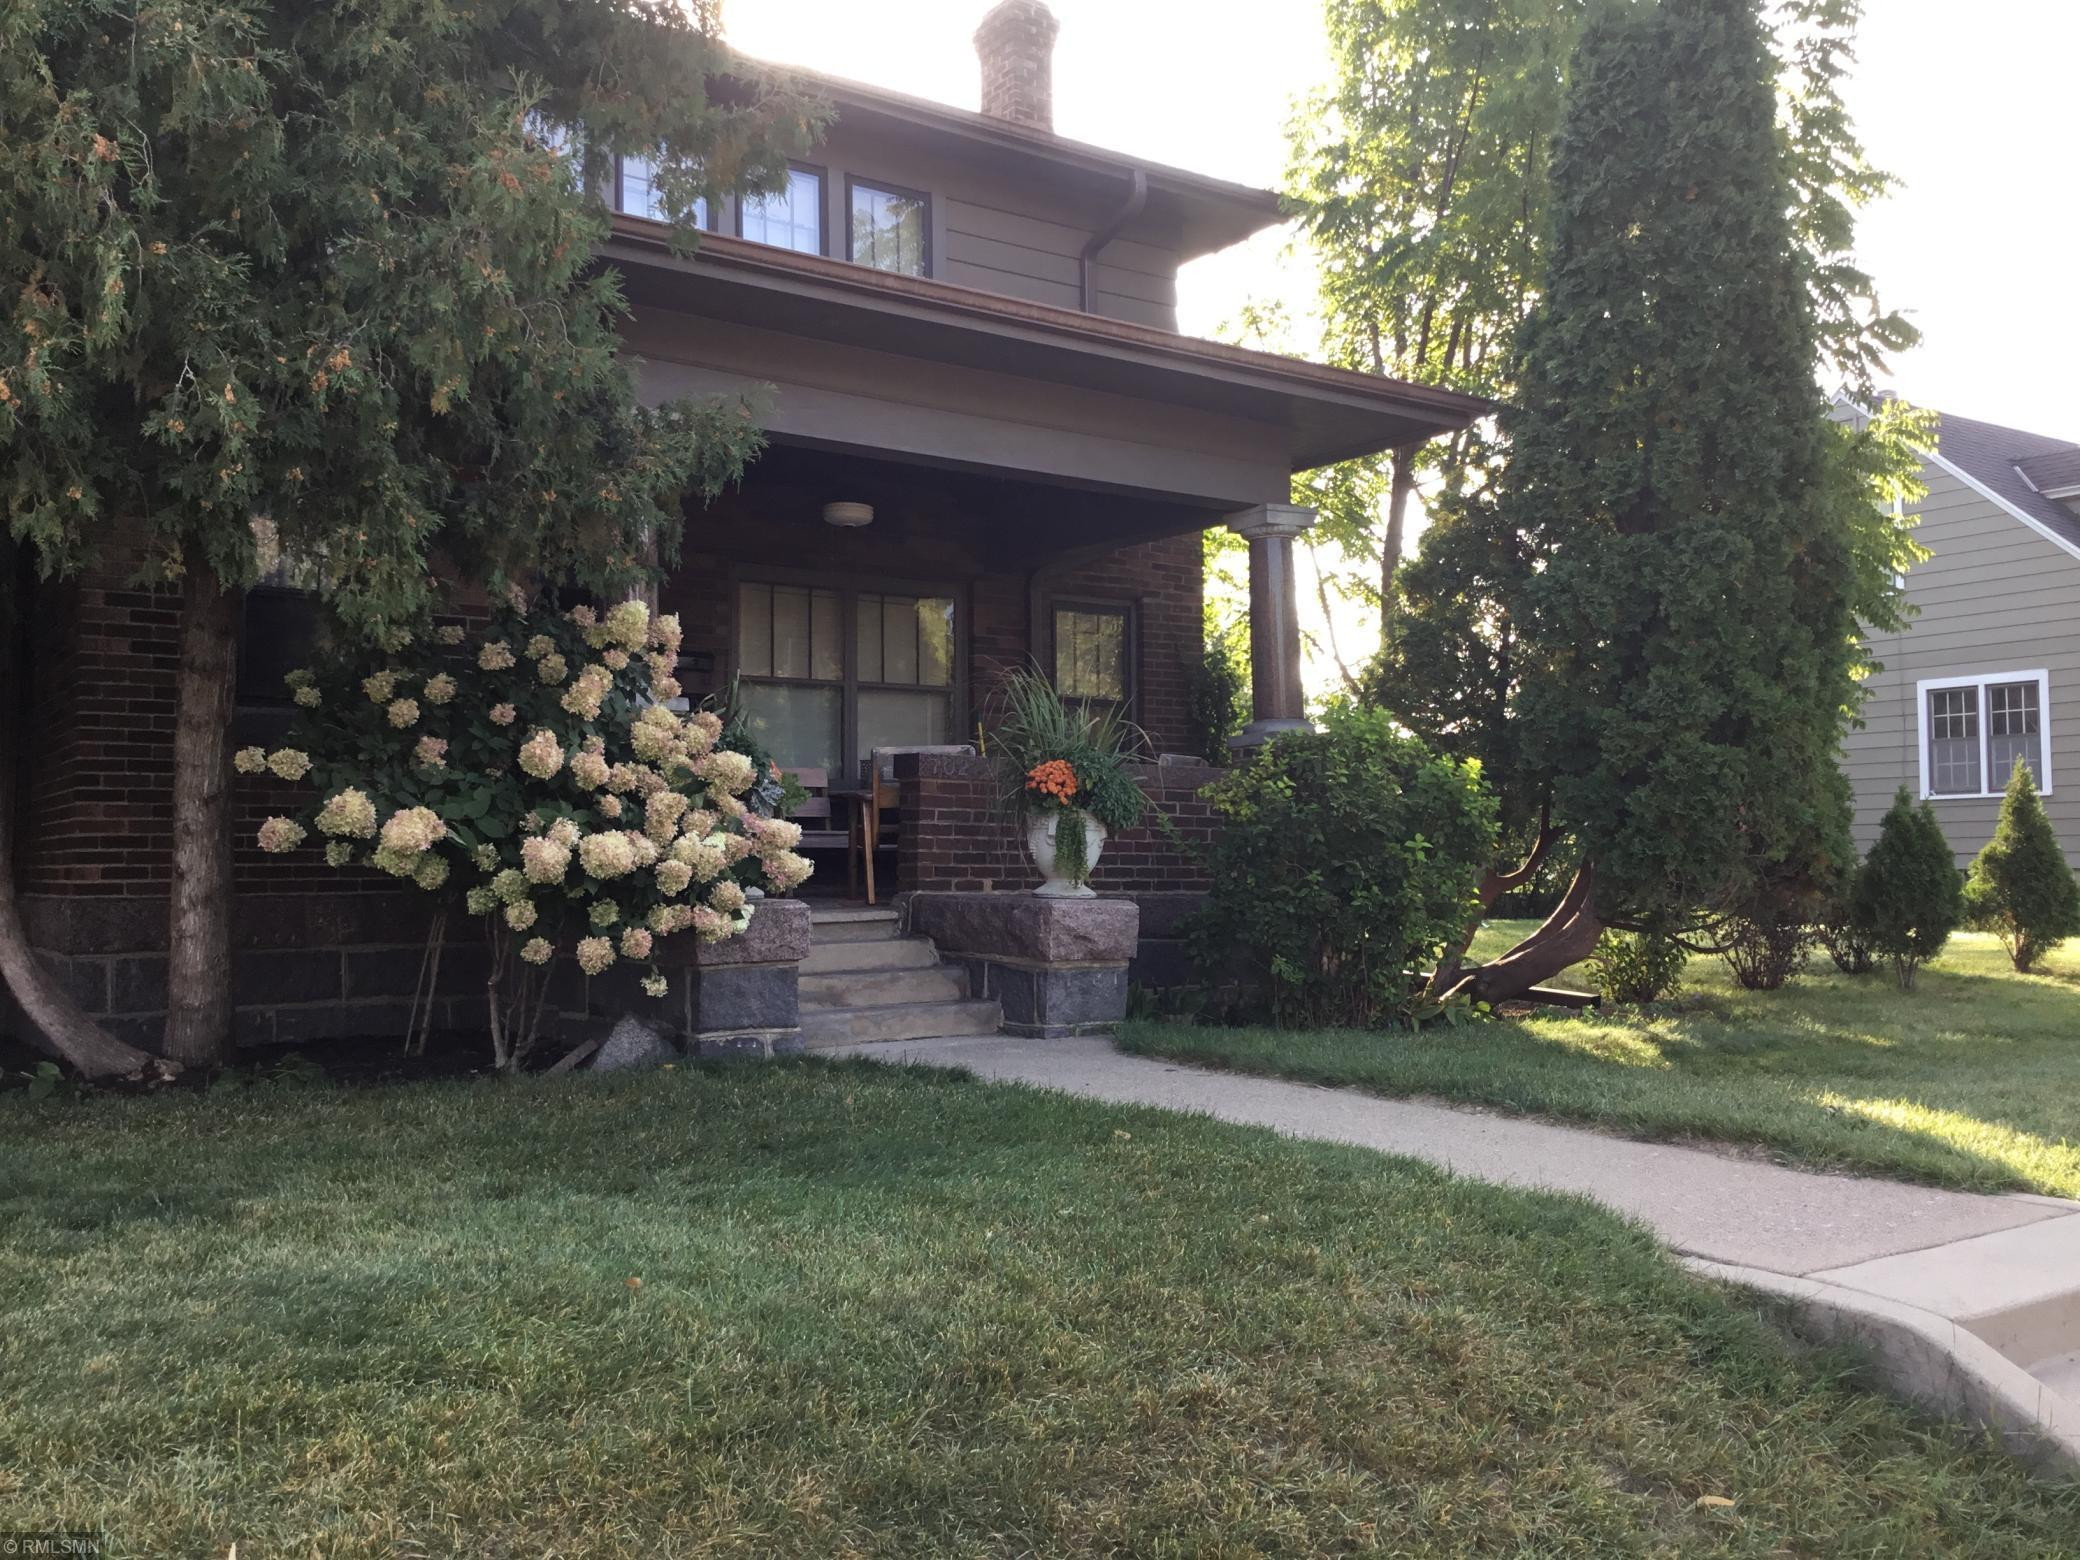 """This Historic Prairie Style two story home was built in 1917, and is still owned & lovingly maintained by the original family. It has 4+ bedrooms, 3 baths, 2 offices, Lg. FR, formal dining, an efficient and charming eat in kitchen with lots of cupboards and counter space,  9 ft ceilings. Bright and cheerful bedrooms.  9"""" oak baseboards, heavy oak trim, solid oak doors. The main floor living room """"decorative"""" fireplace and solid narrow maple flooring throughout. The basement has high ceilings with beautiful open unfinished joists,  3/4 bath,11x11 office, laundry with large folding counter, fruit cellar and wine cellar. The big yard has a perfect family location across from Lake George Municipal Complex & Clark Field.  It's walking distance to downtown and SCSU. Granite pillars, foundation & steps, brick and cedar siding exterior. The 2 car garage is granite and brick, and a unique granite wall next to garage,""""Old World""""perfect for today's world! Includes license mother-in-law apartment."""